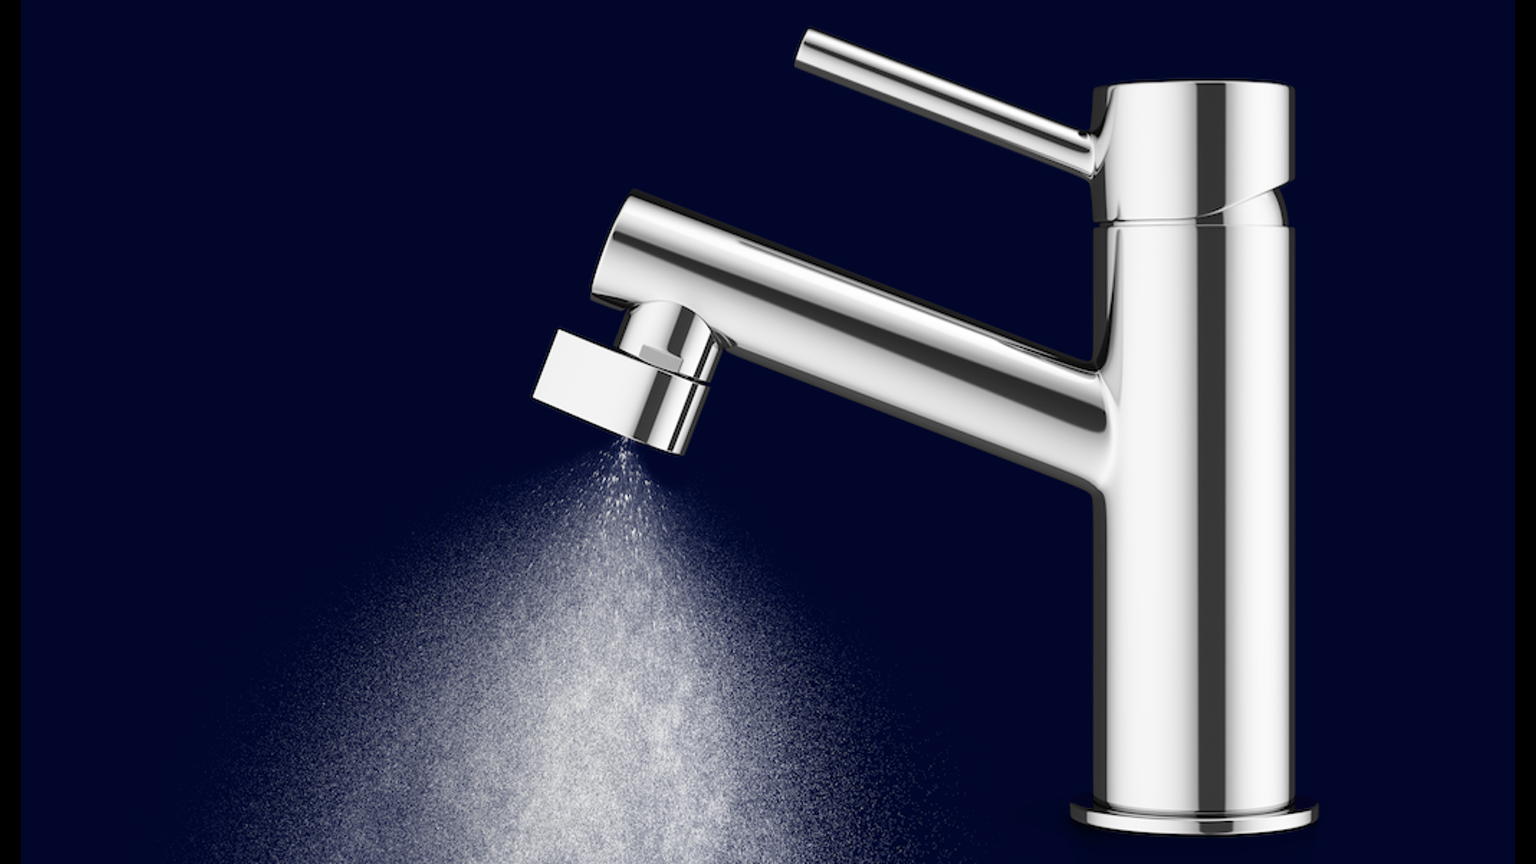 Altered Nozzle Same Tap 98 Less Water By Altered Kickstarter